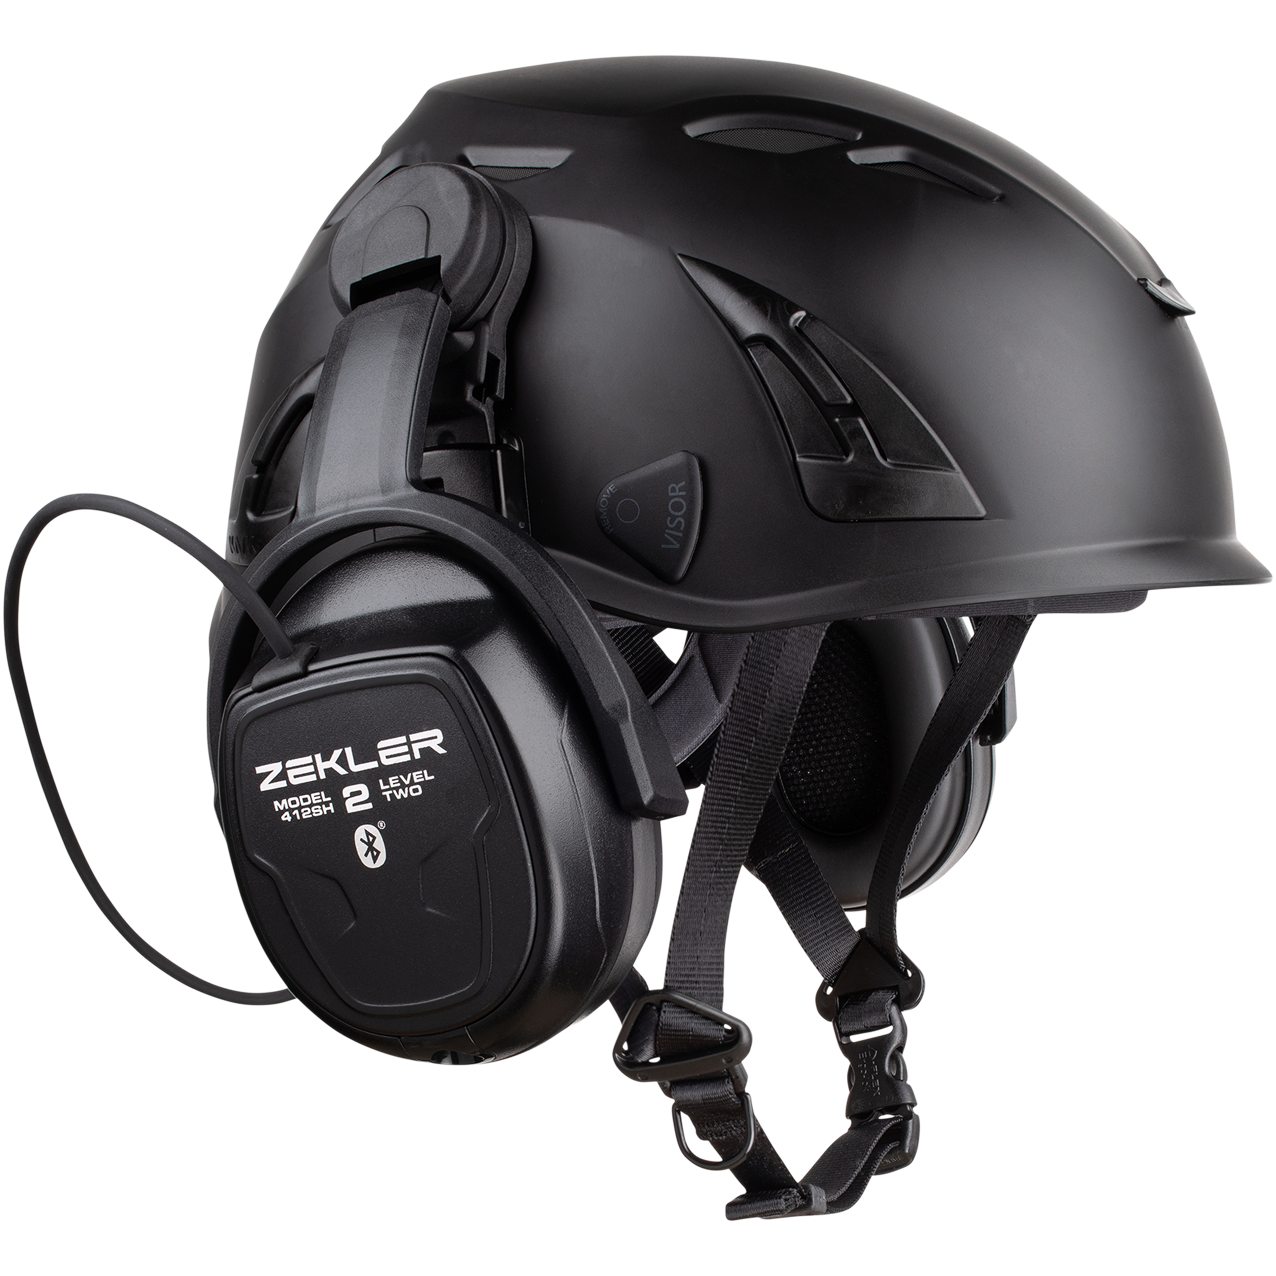 Headset Zekler 412SH for helmets